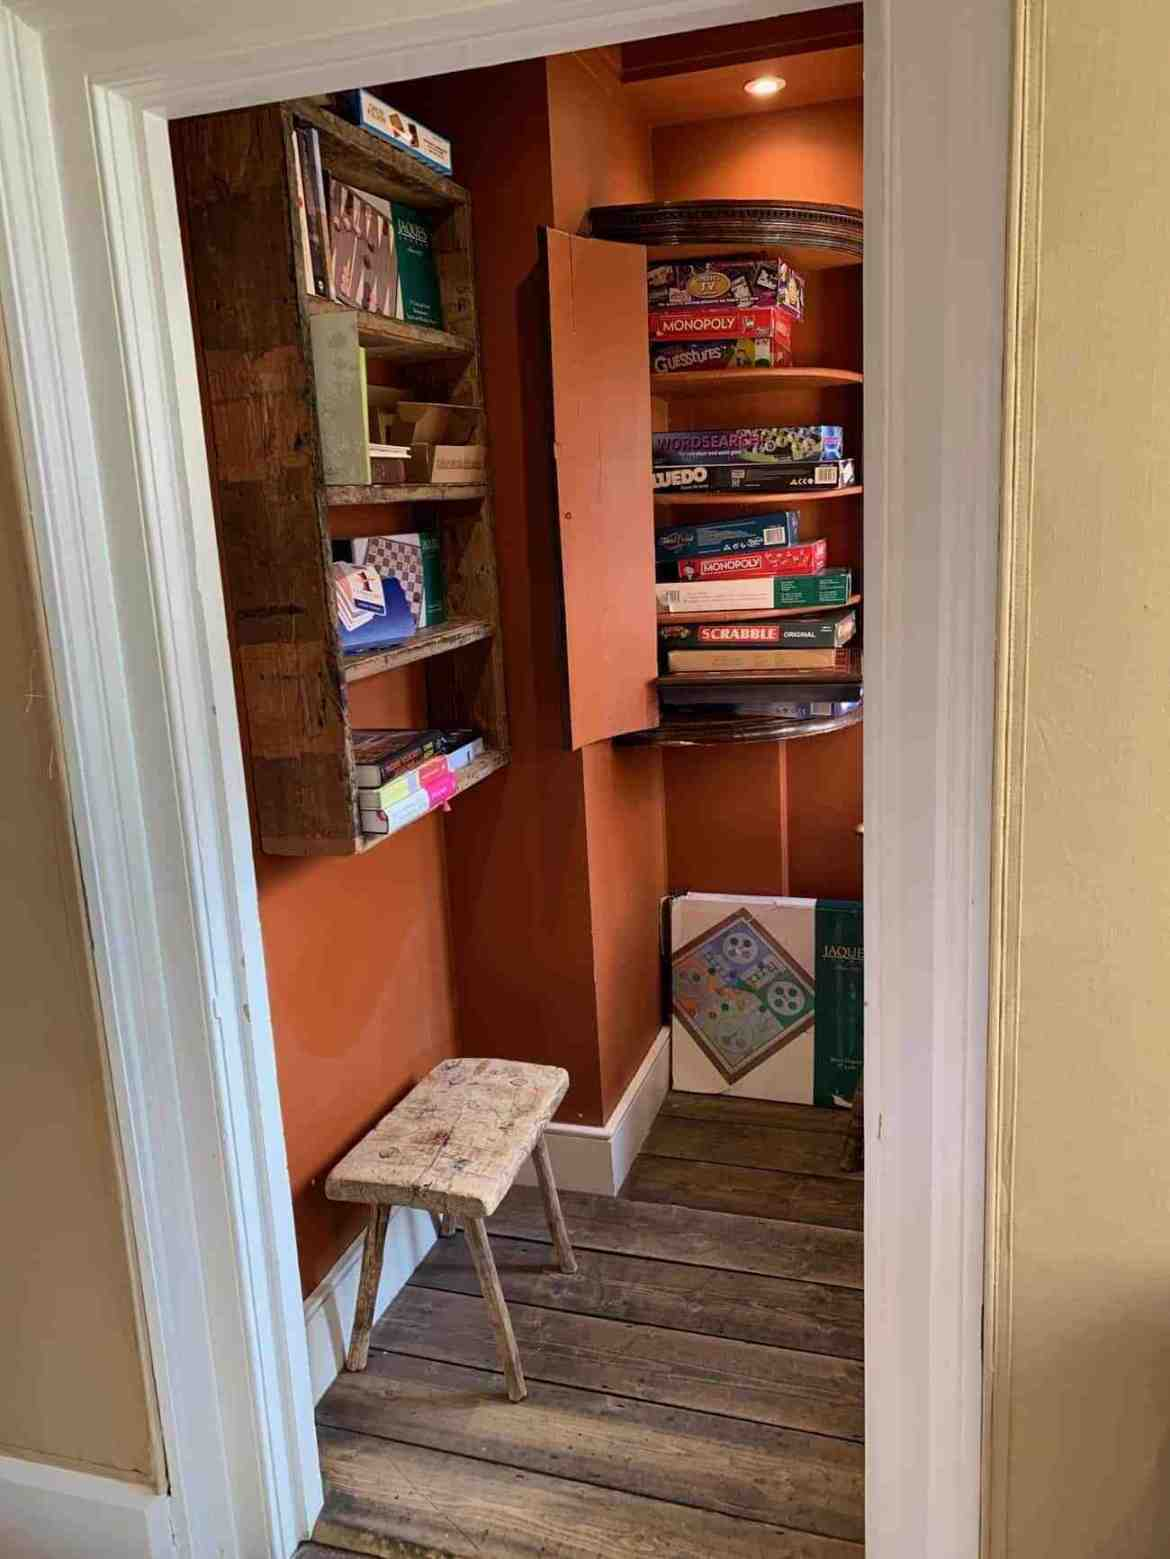 Board games nook